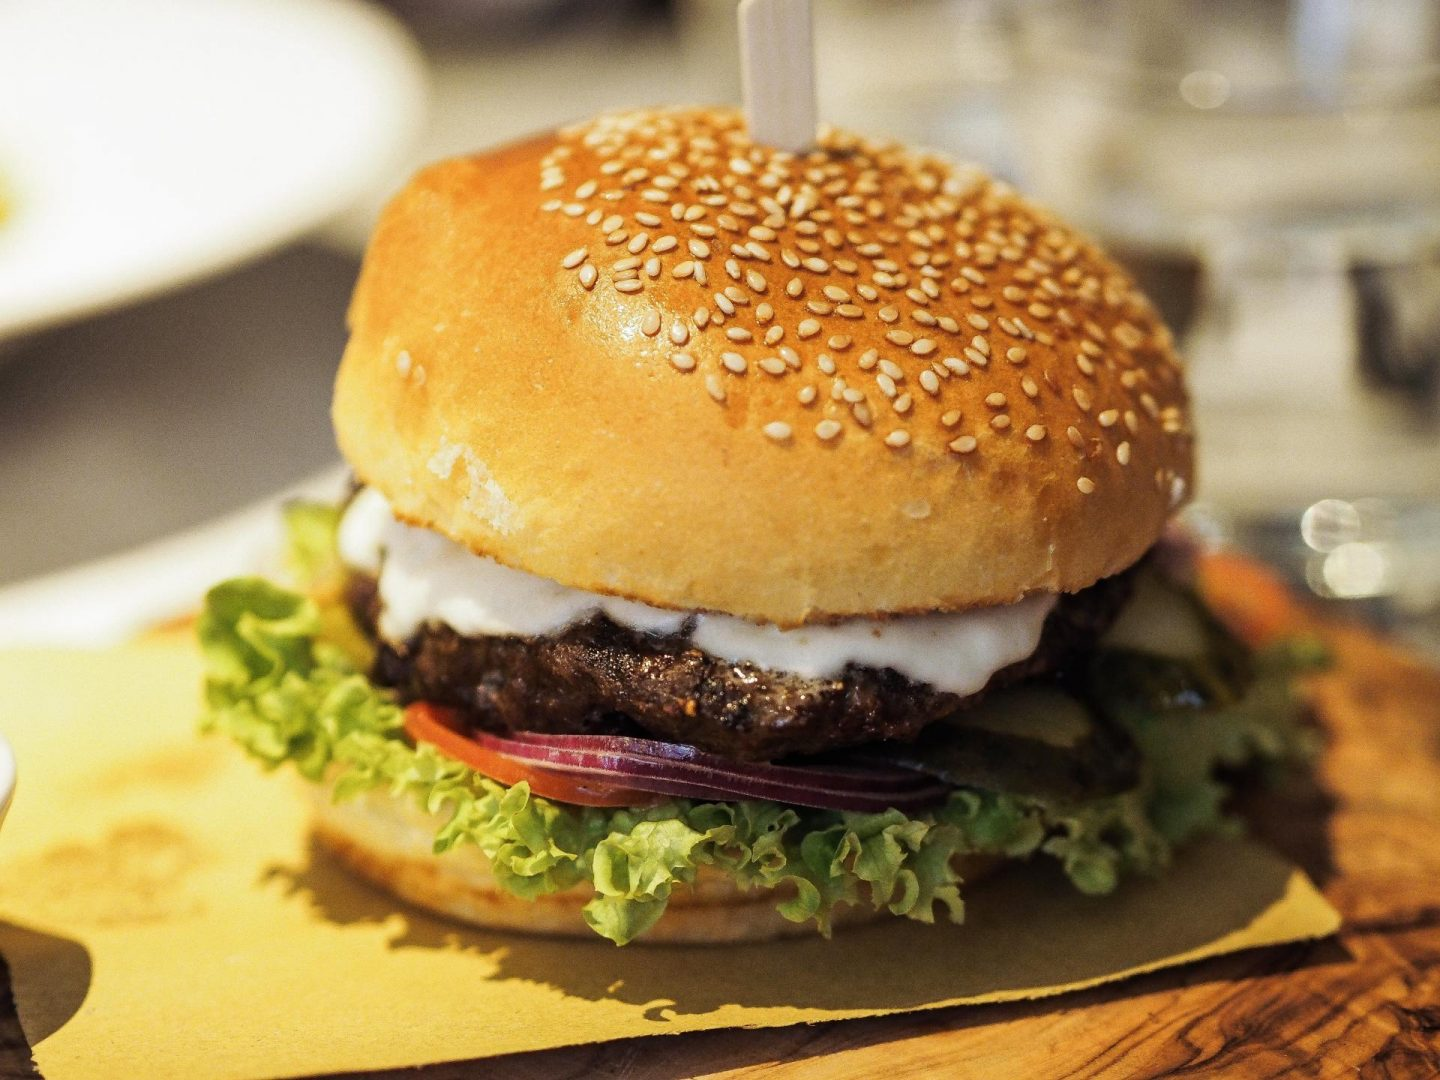 How to host the Ultimate Burger Night